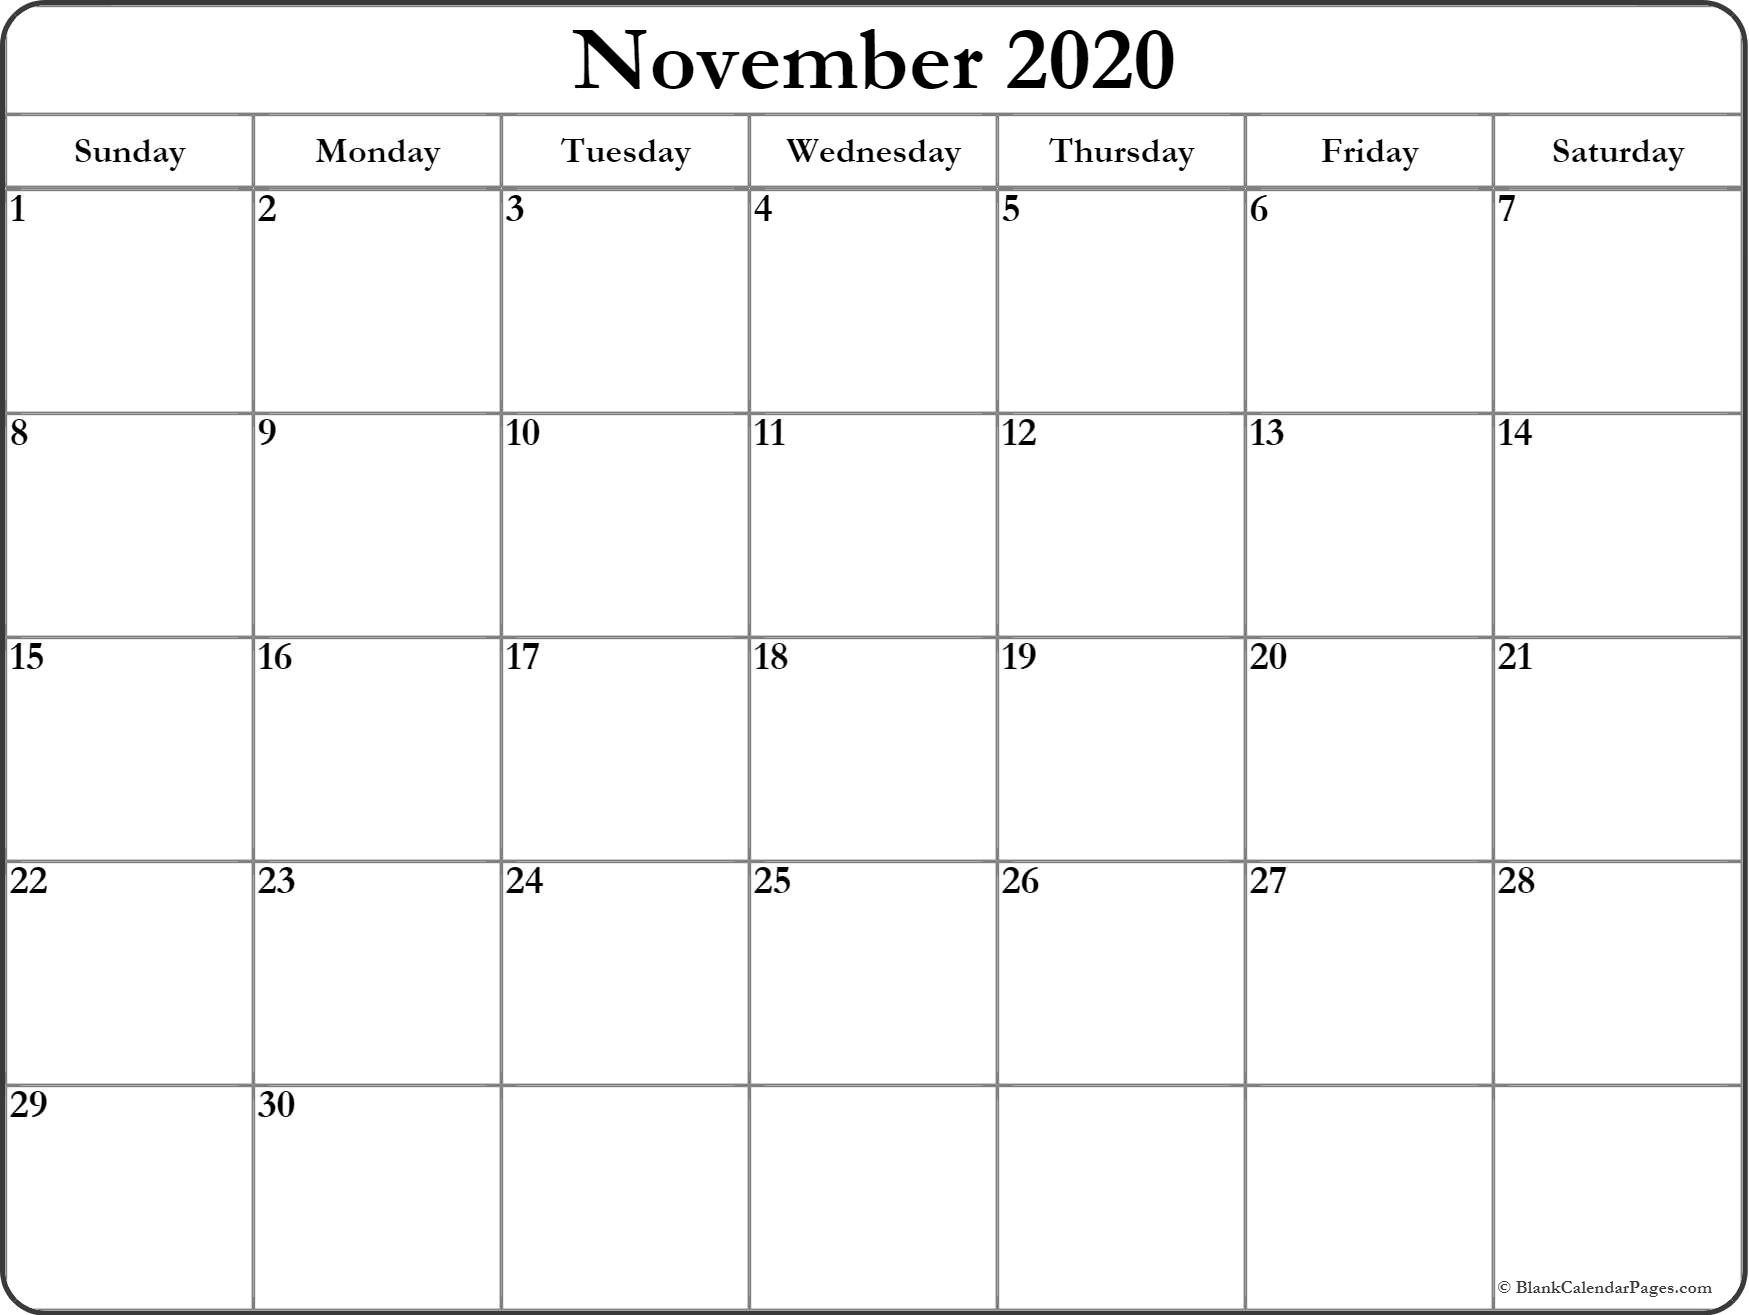 November 2020 Calendar | Free Printable Monthly Calendars-Month Template 2020 Printable Free Starting On Monday